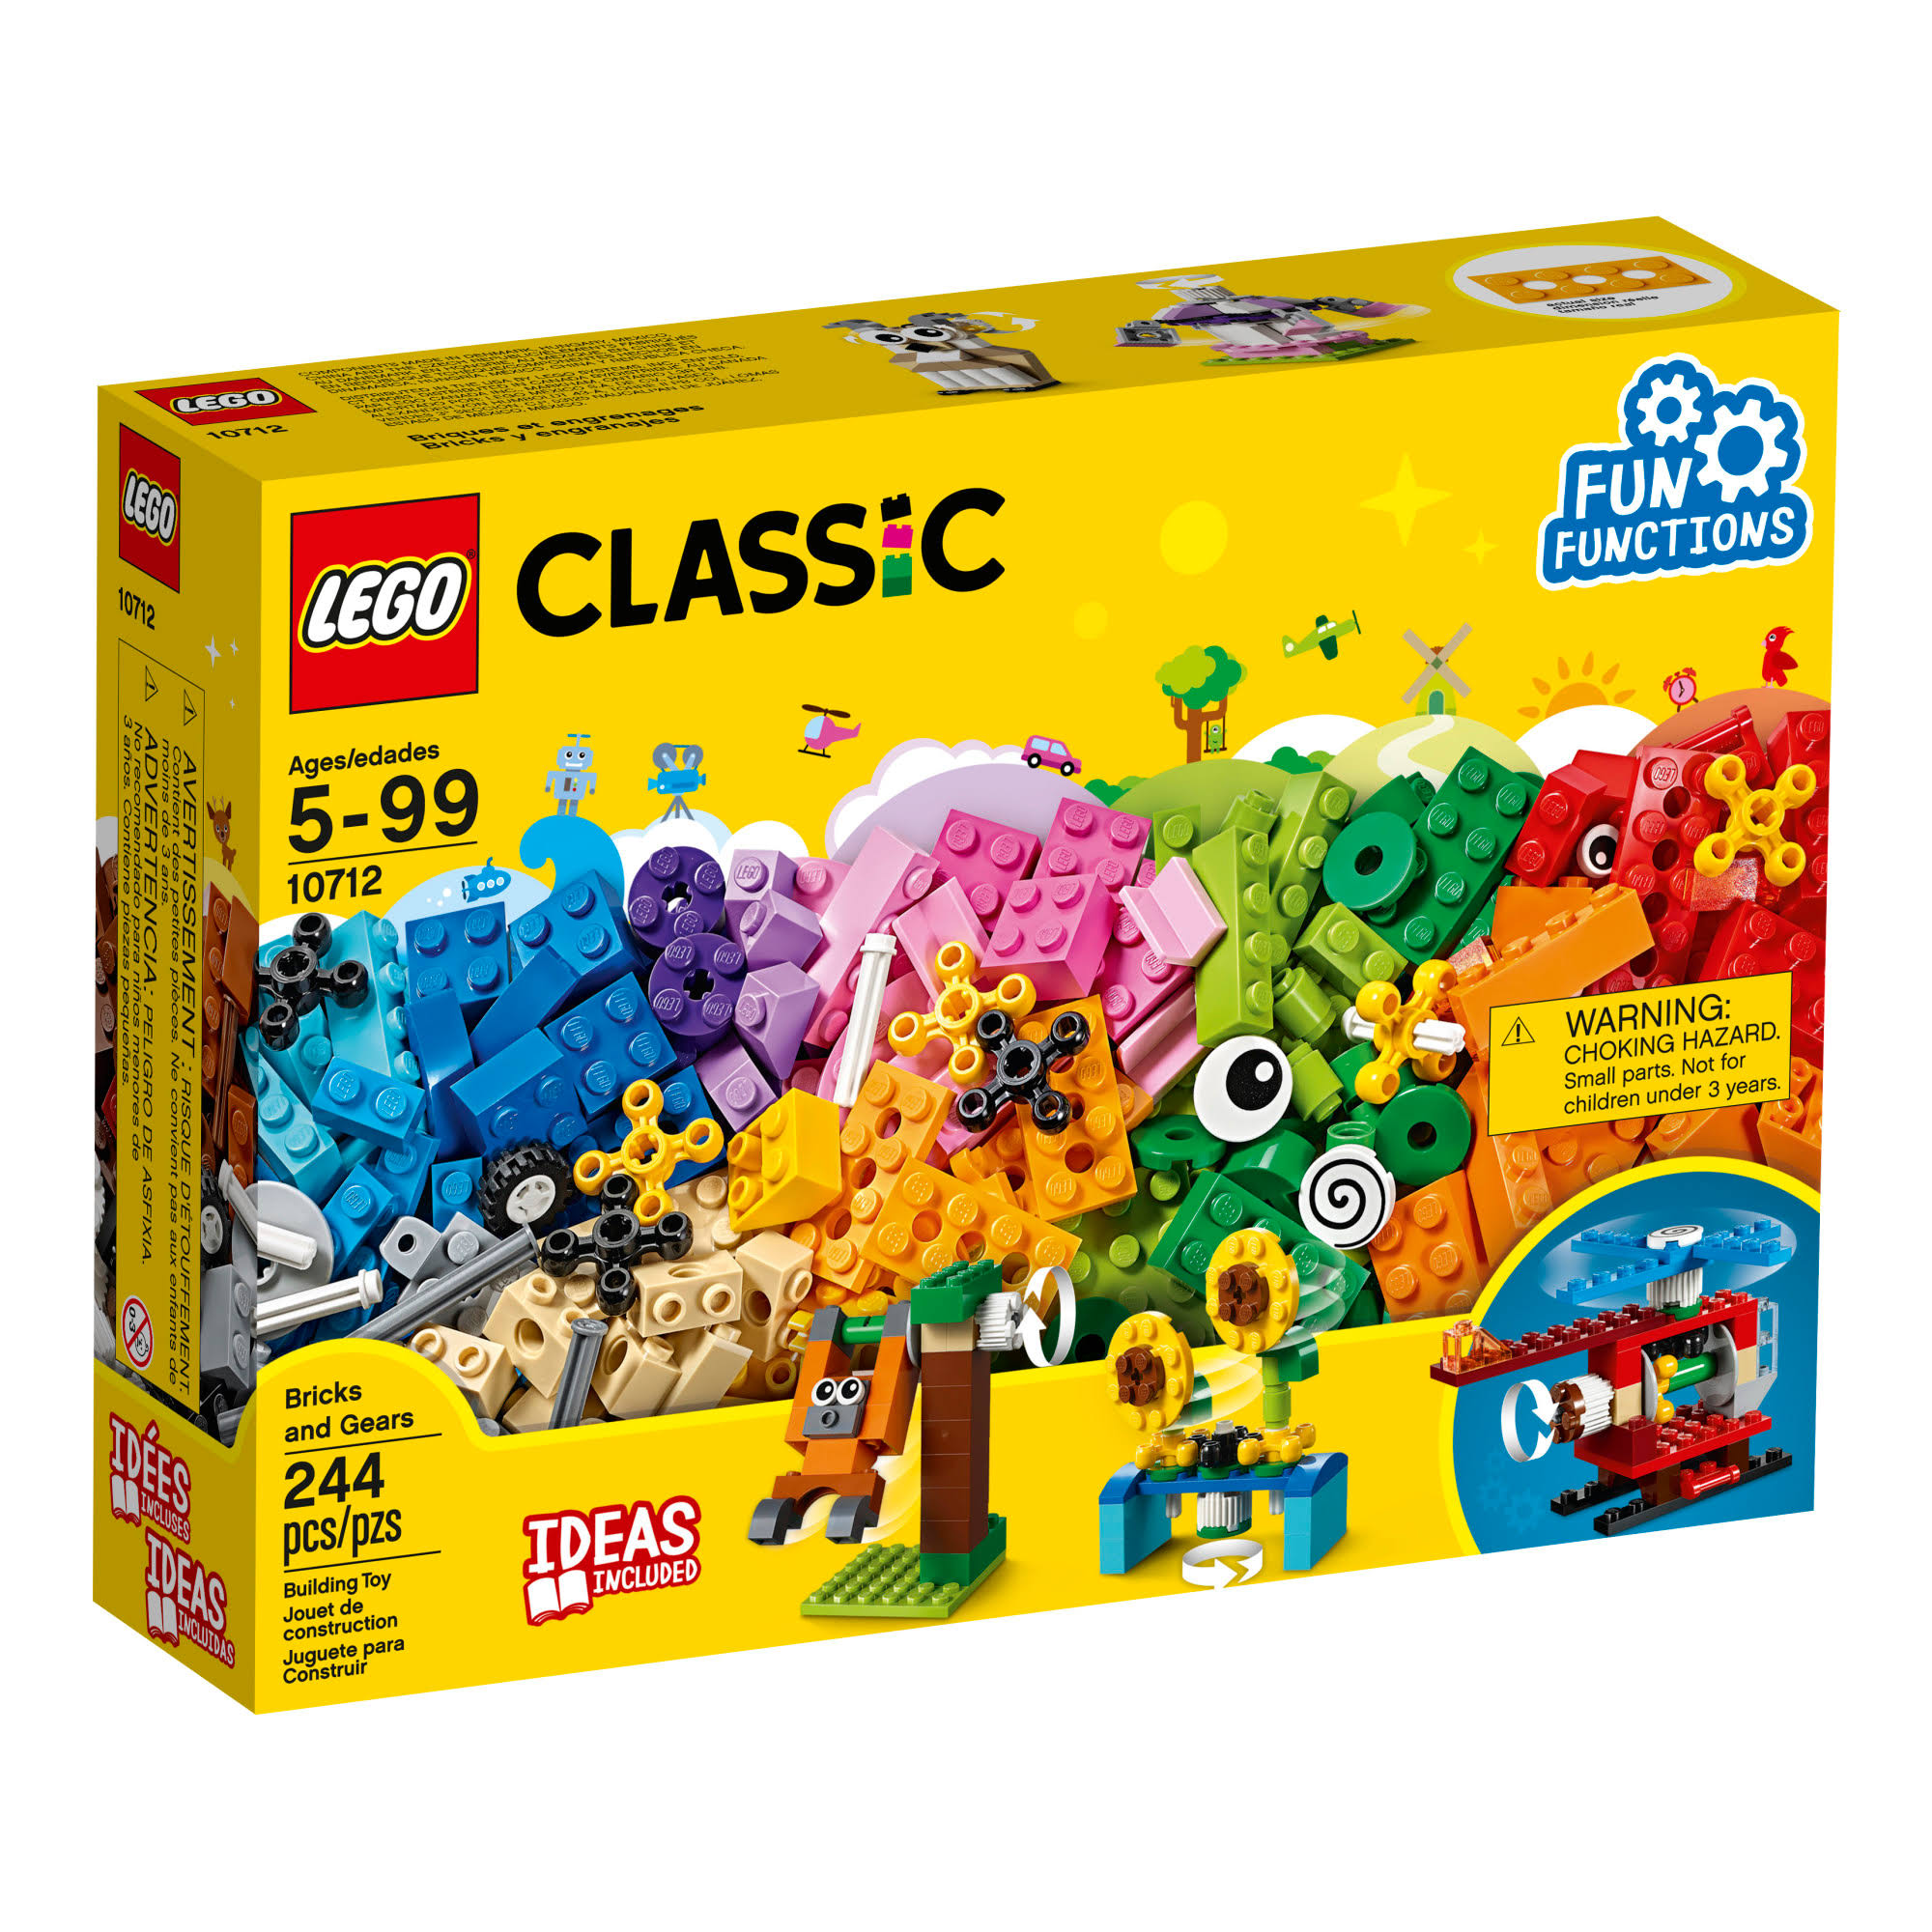 LEGO 10712 Classic Bricks and Gears Building Toy - 244pcs